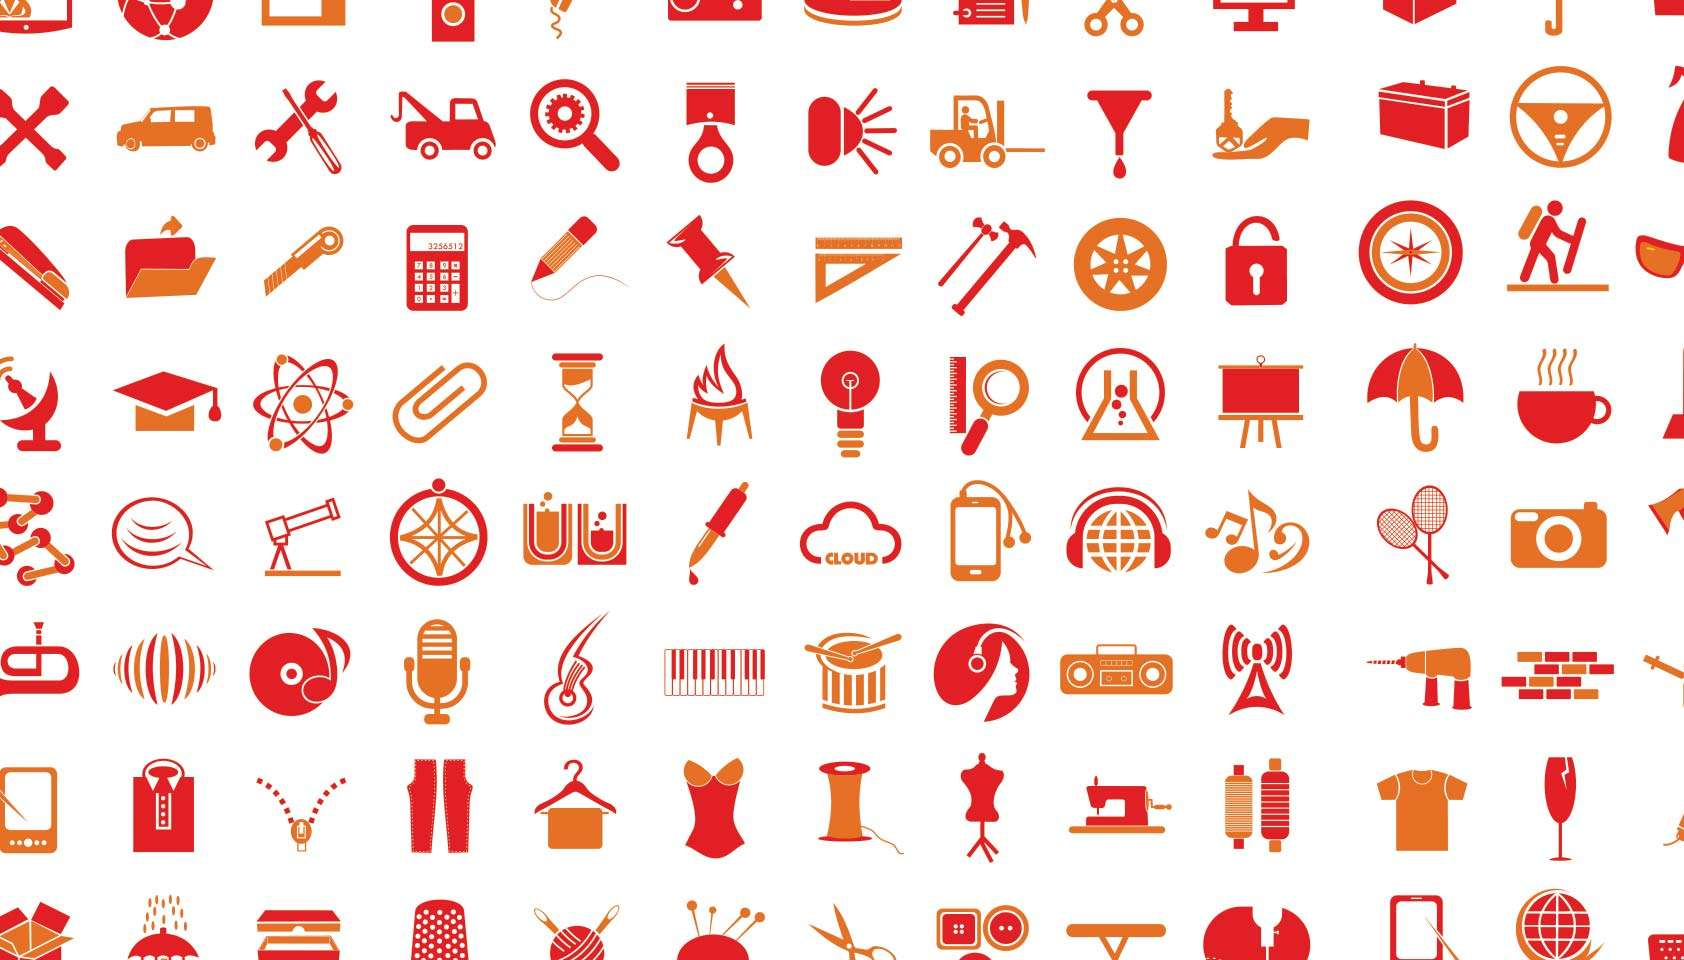 14 Icon Vector Gallery Images